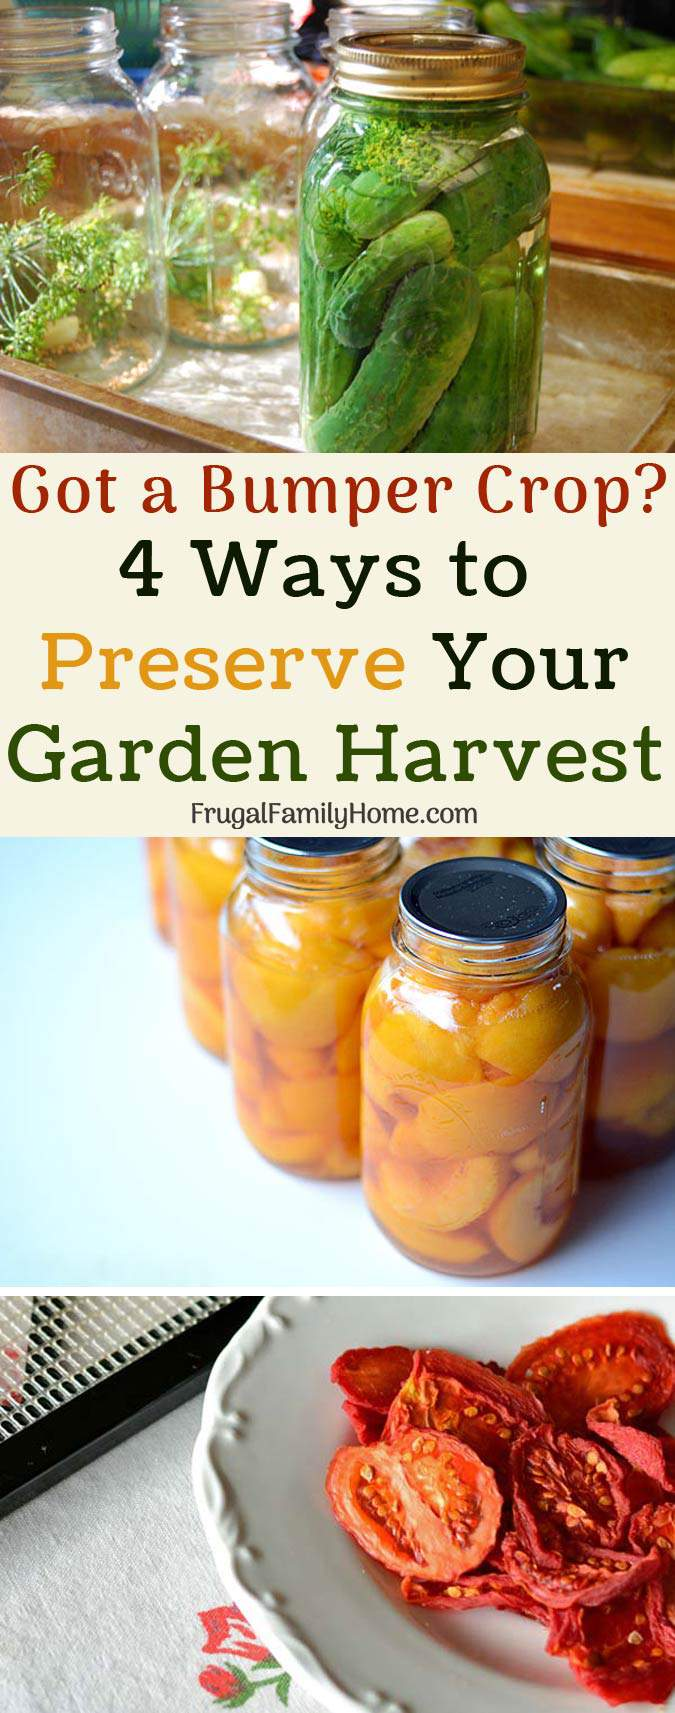 4 Practical Ways to Preserve Your Garden Harvest. Got a bumper crop? Preserve your surplus garden harvest with one of these 4 ways.